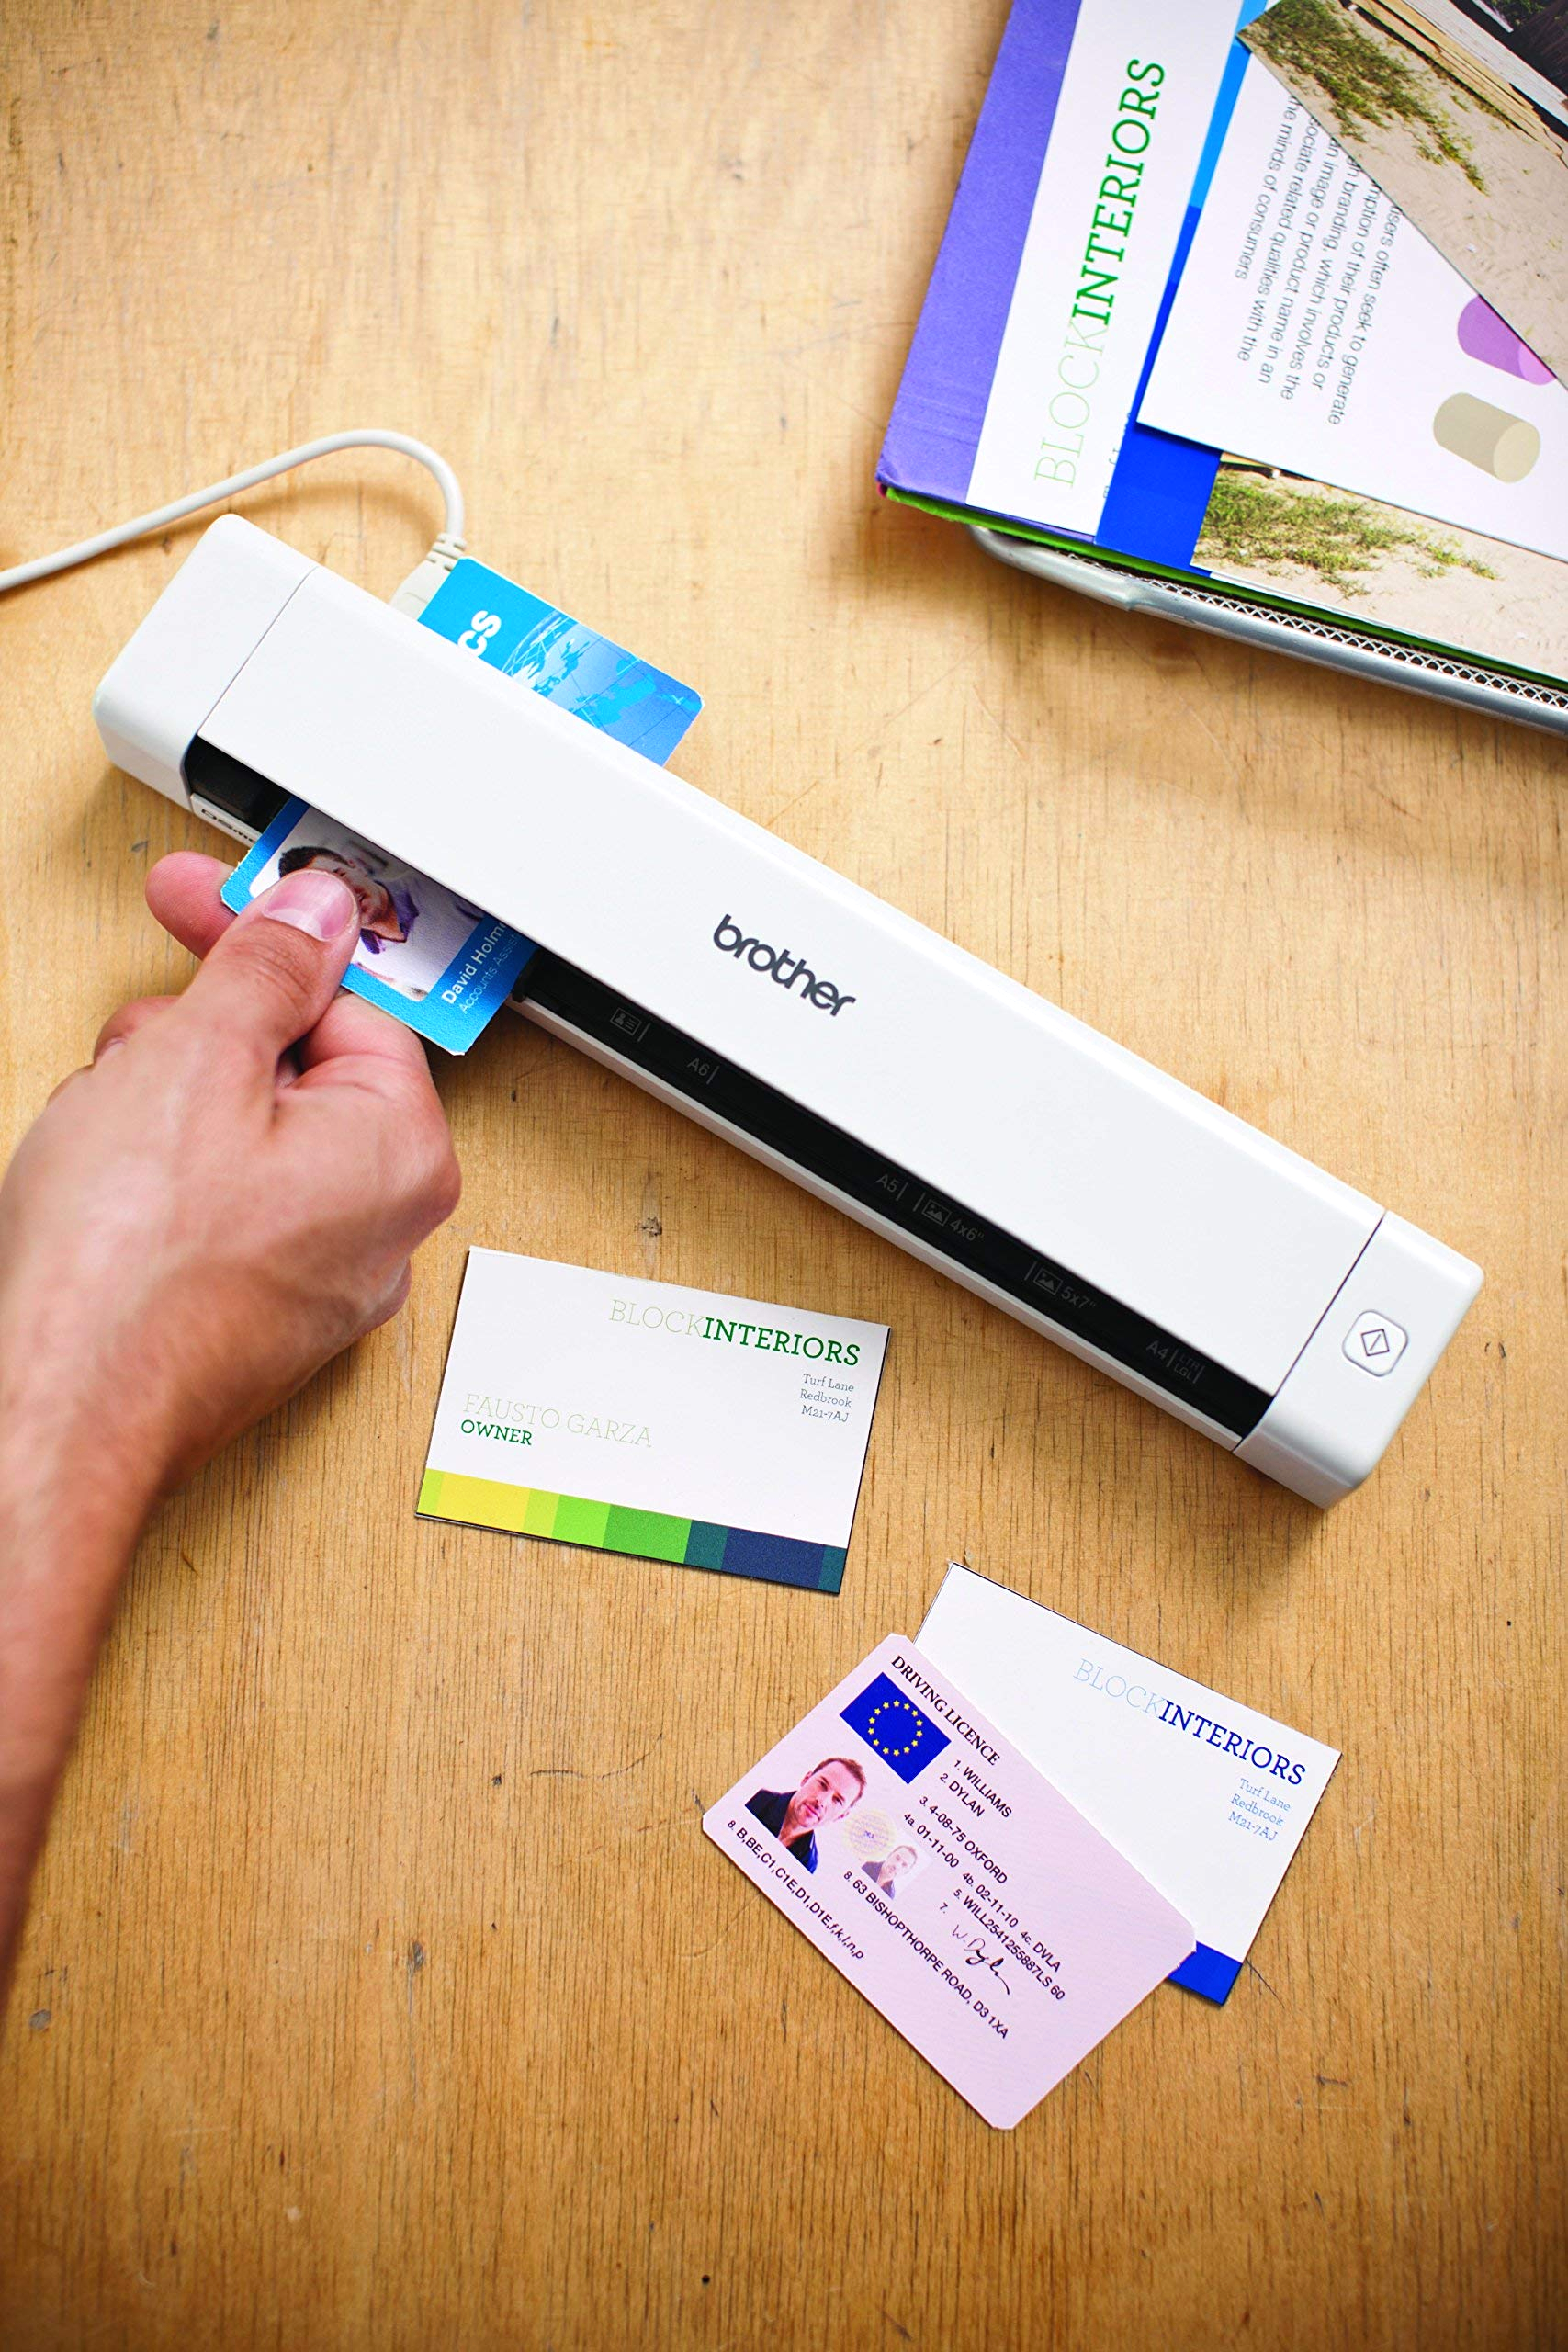 brother mobile color page scanner ds 620 fast scanning speeds pact and lightweight patible with br receipts